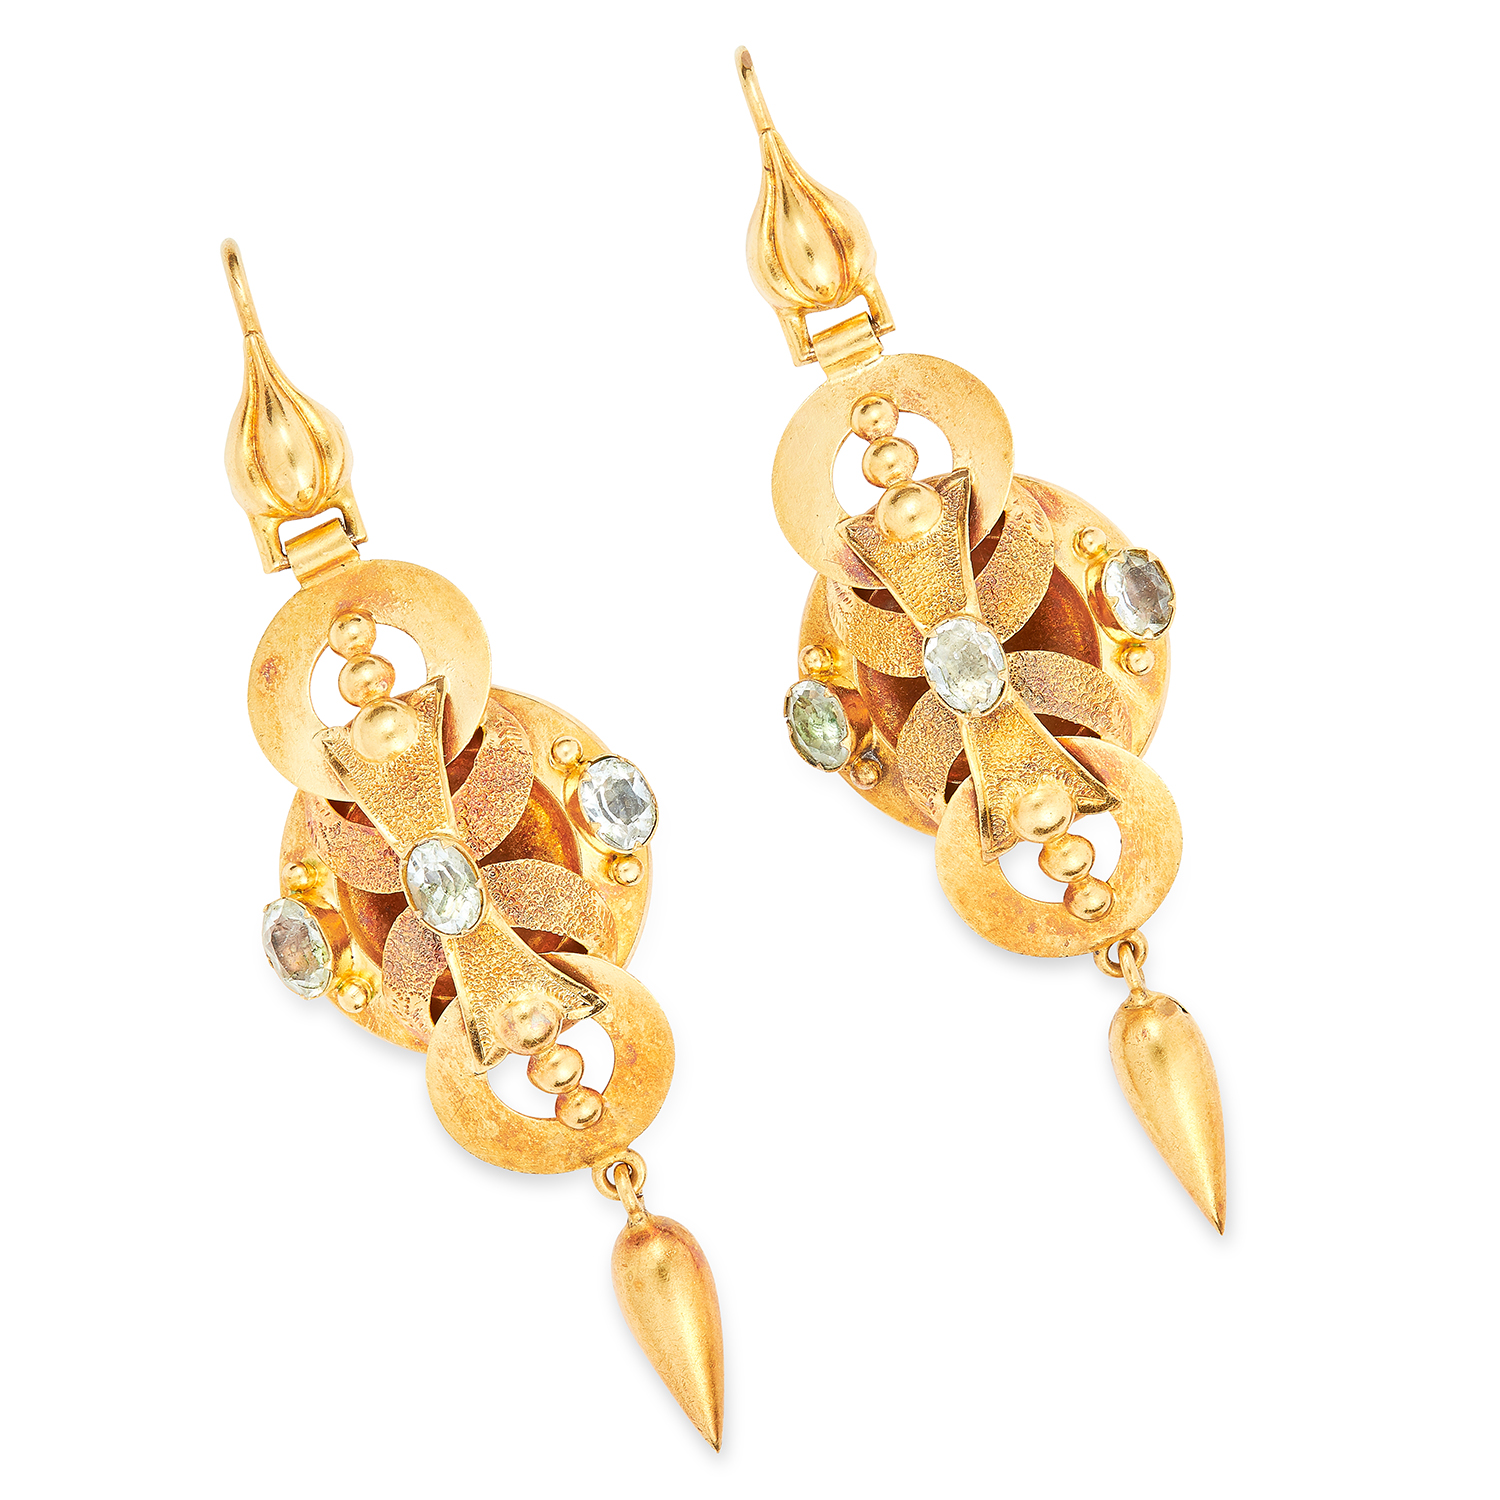 ANTIQUE VICTORIAN AQUAMARINE MOURNING EARRING AND BROOCH SUITE in high carat yellow gold, set with - Image 2 of 2